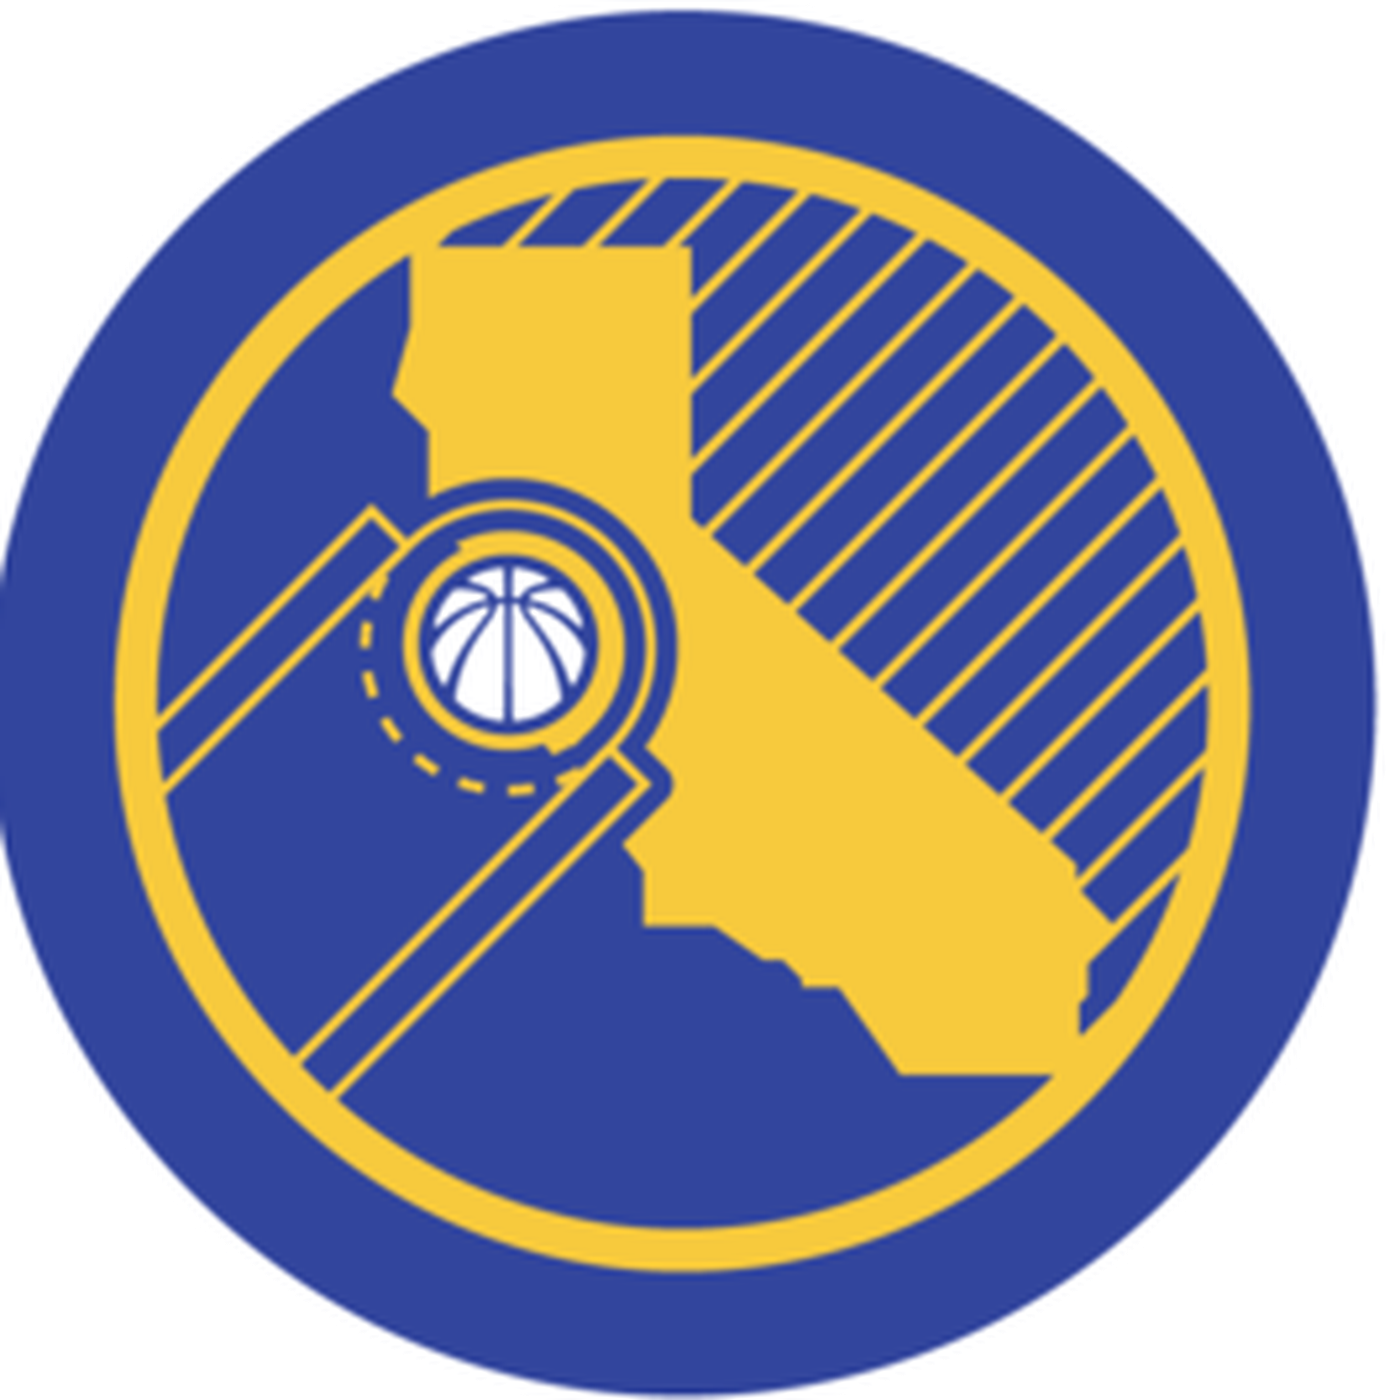 Golden state warriors logo png. New leaked hot or